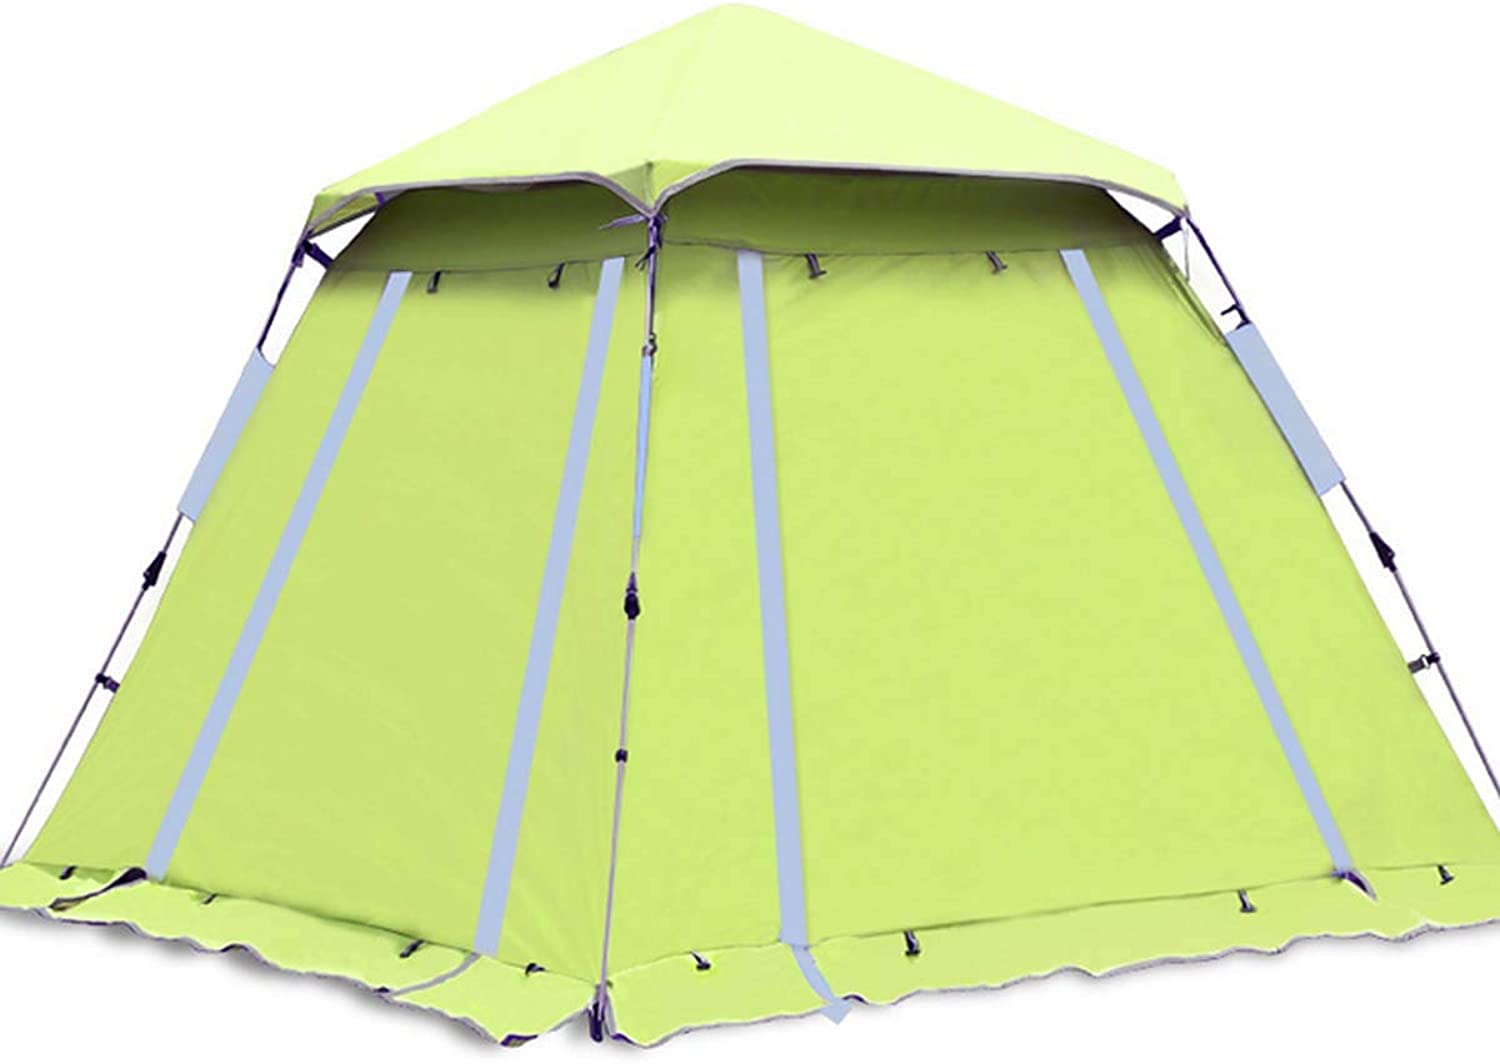 Camping Tent with Uv Predection, 4-5 Person Windproof and Rainproof Instant Tent, Anti Mosquito Pop Up Fishing Tent Perfect for Beach, Dating and Hiking,Light Green